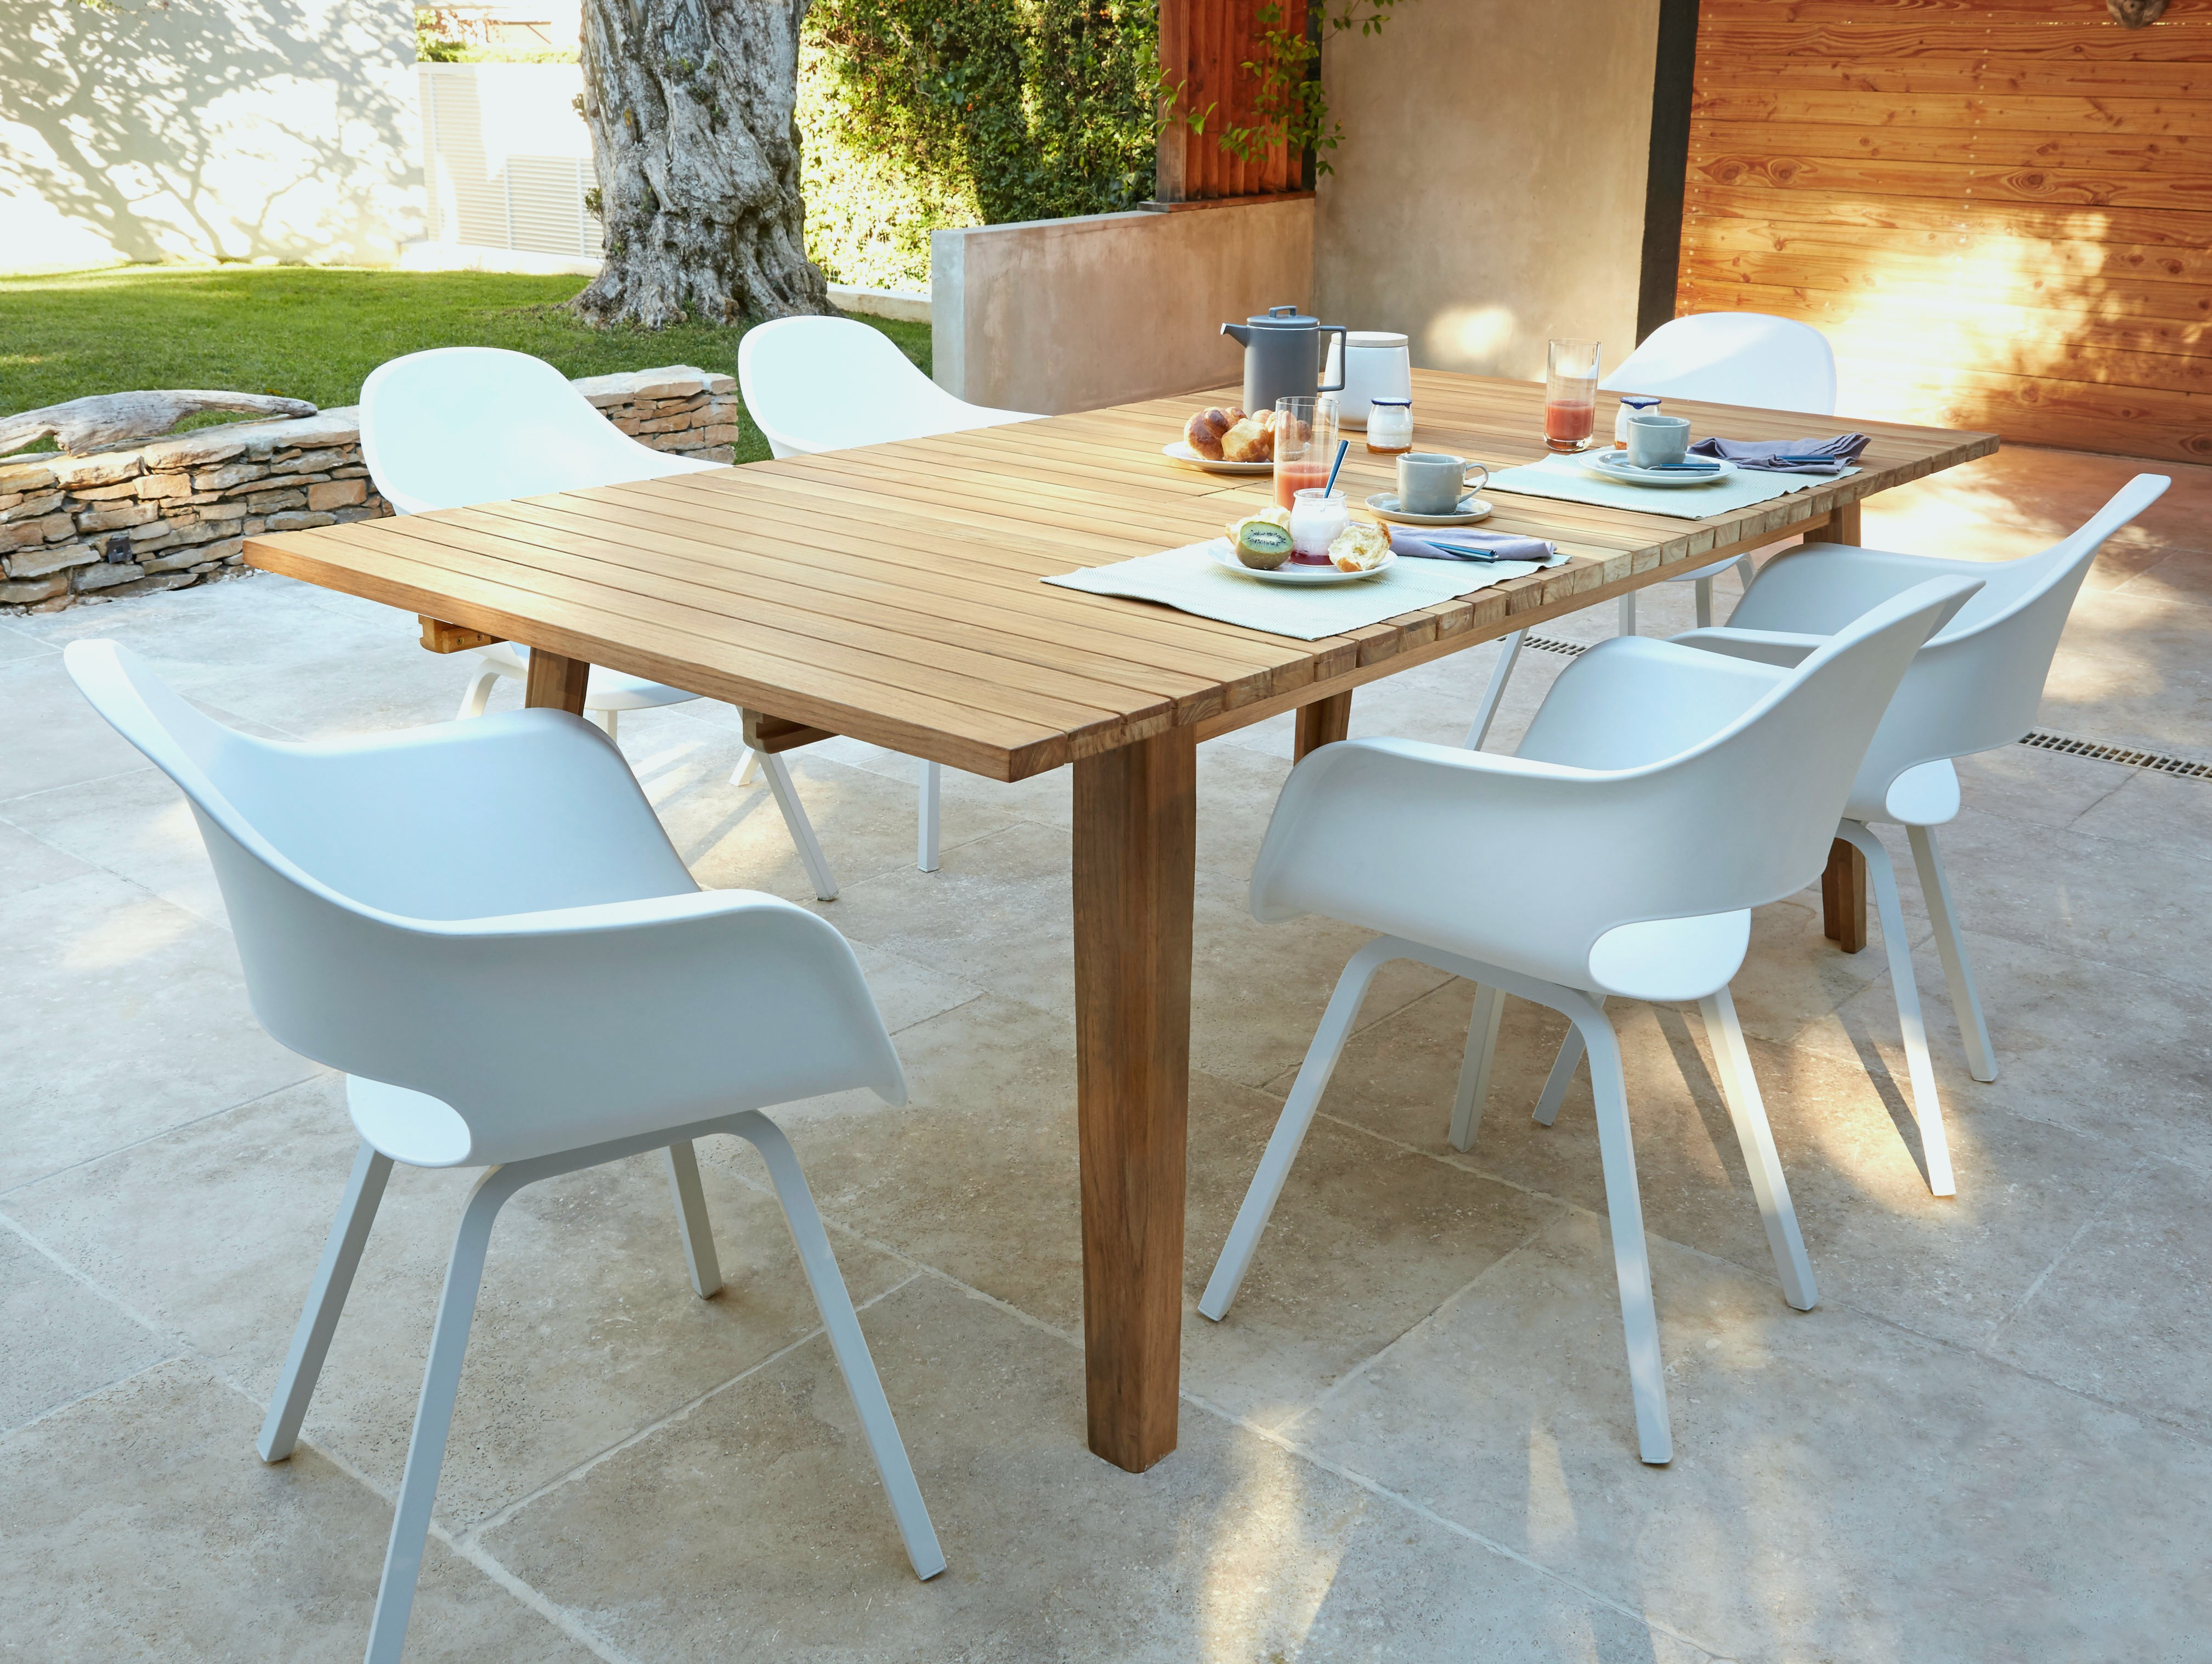 Table Rabattable Leroy Merlin Inspirant Photos Table De Jardin Pliante